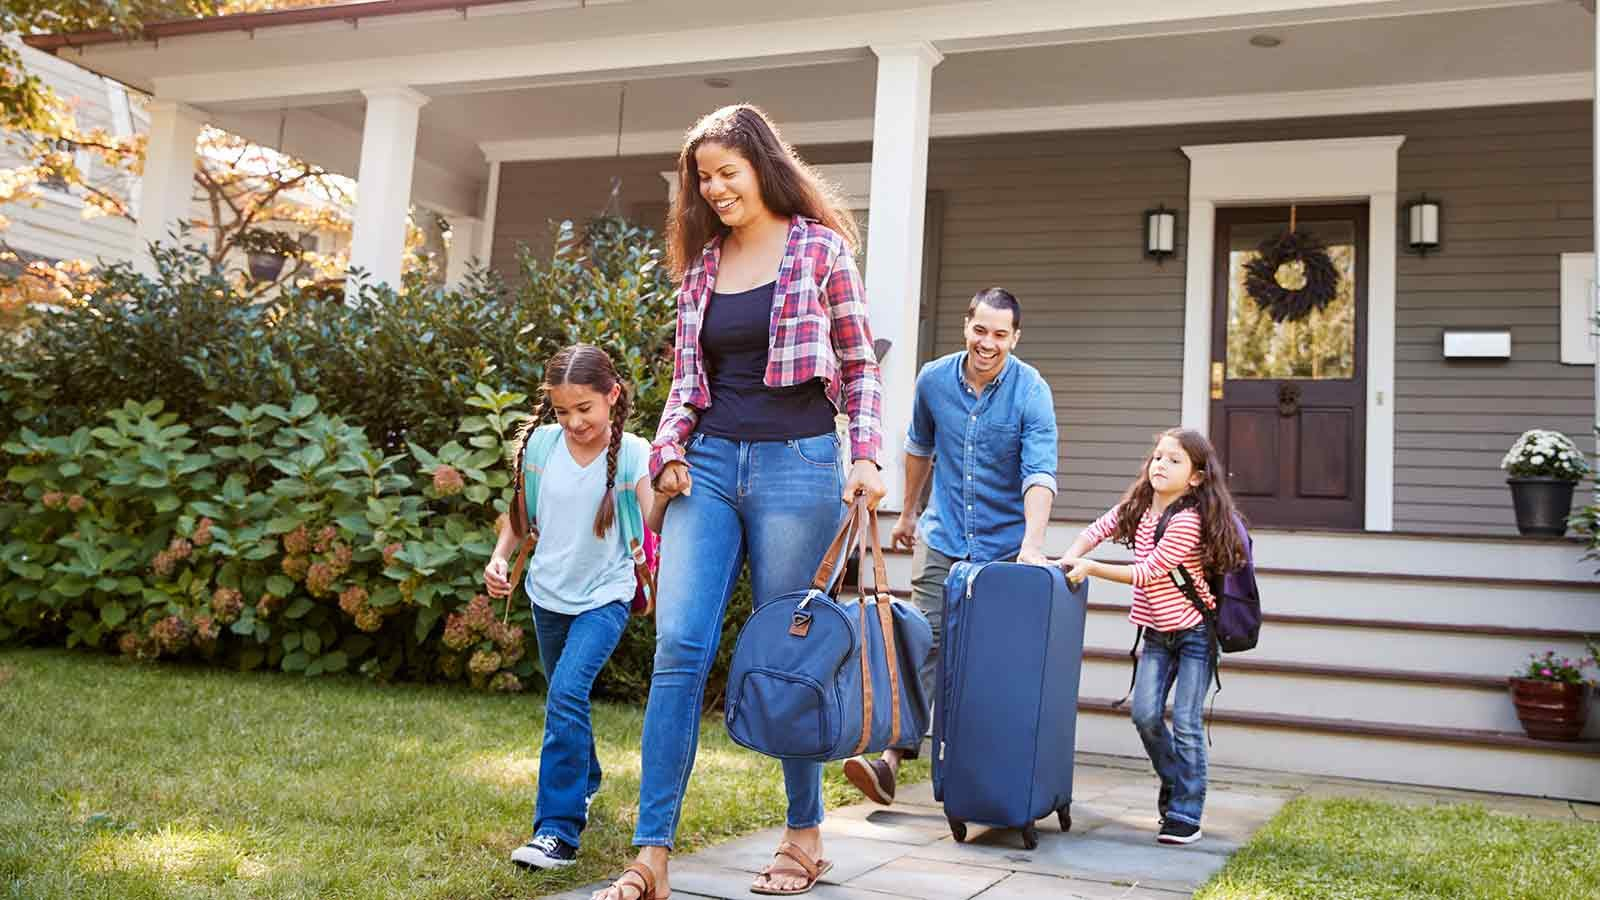 Things You Should Take Care of Before Leaving on Vacation